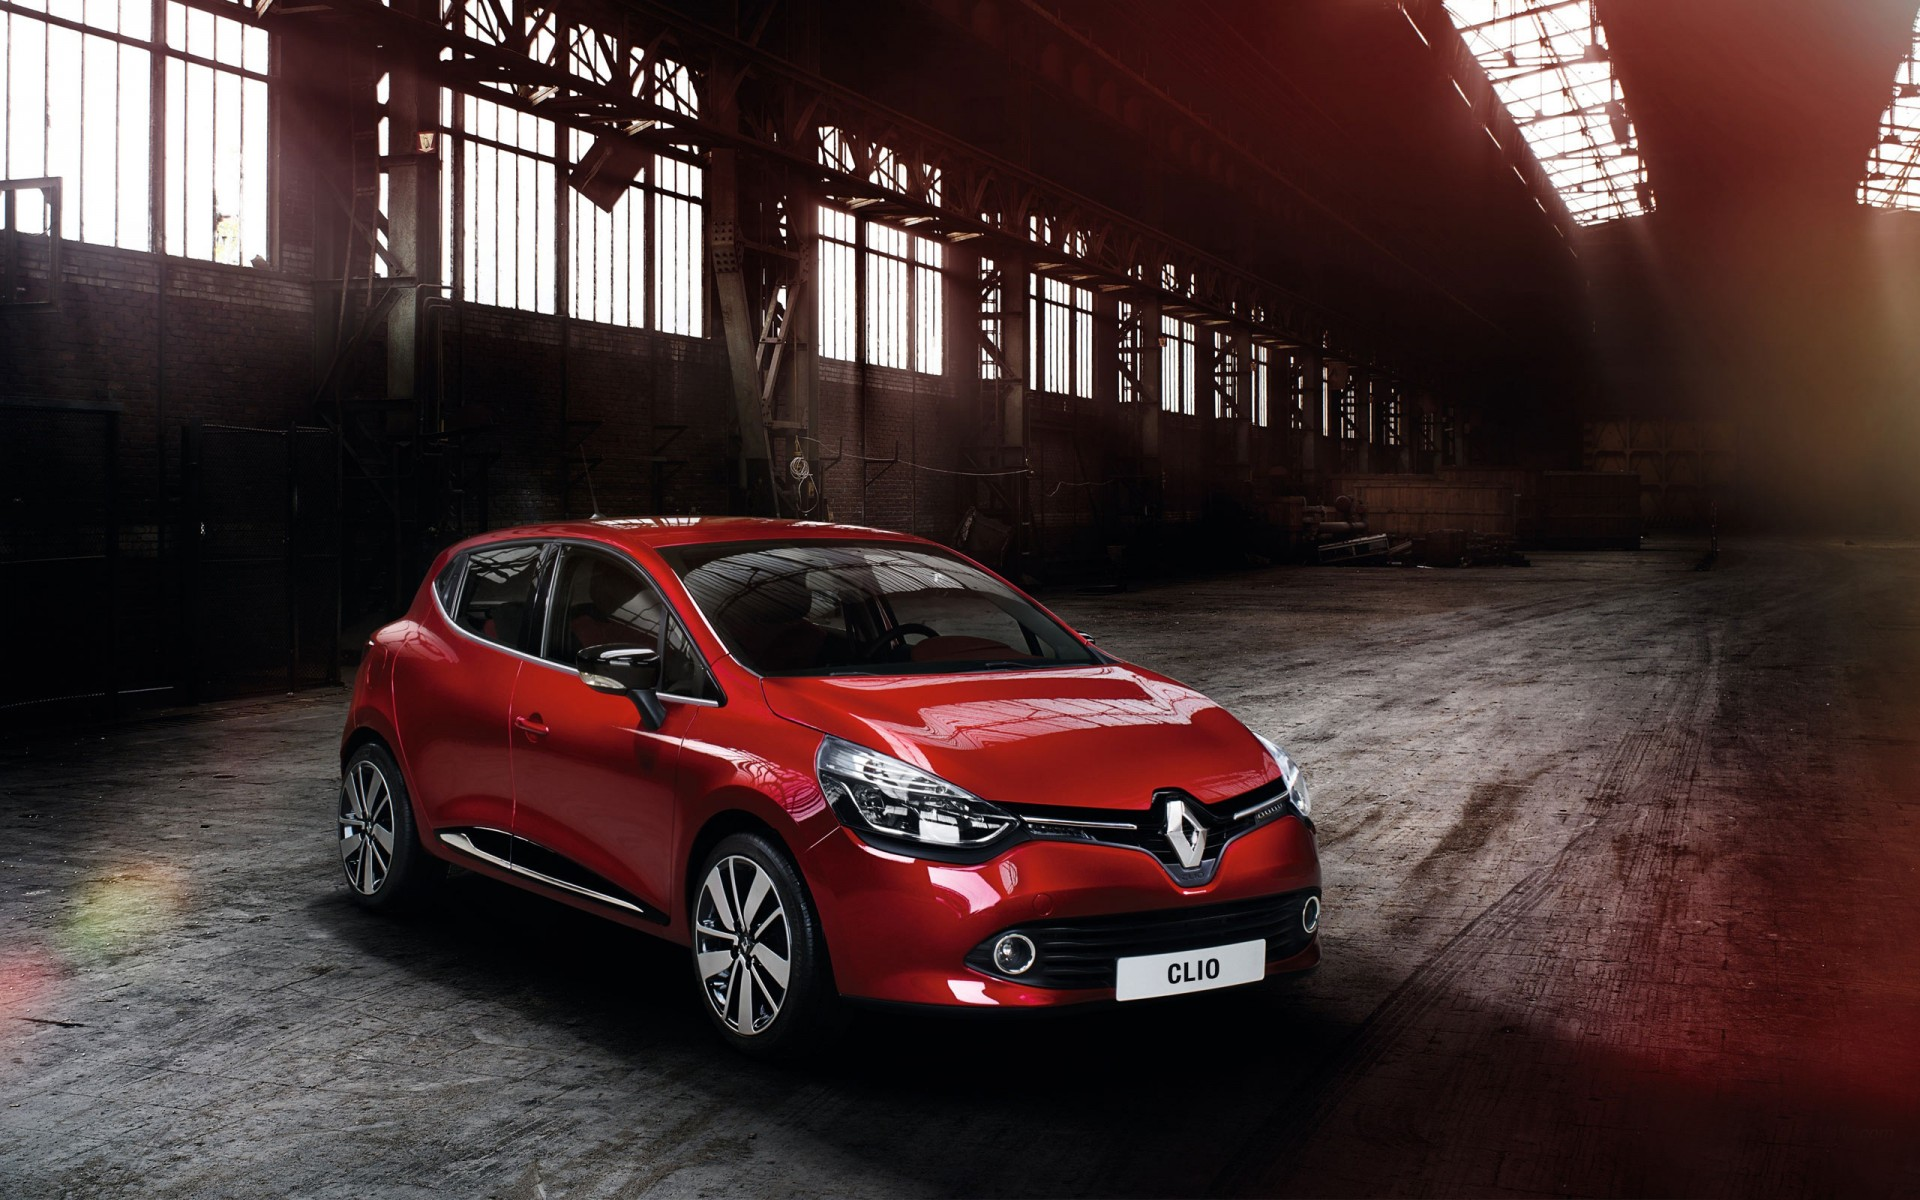 2013 renault clio 3 wallpaper hd car wallpapers id 2873. Black Bedroom Furniture Sets. Home Design Ideas